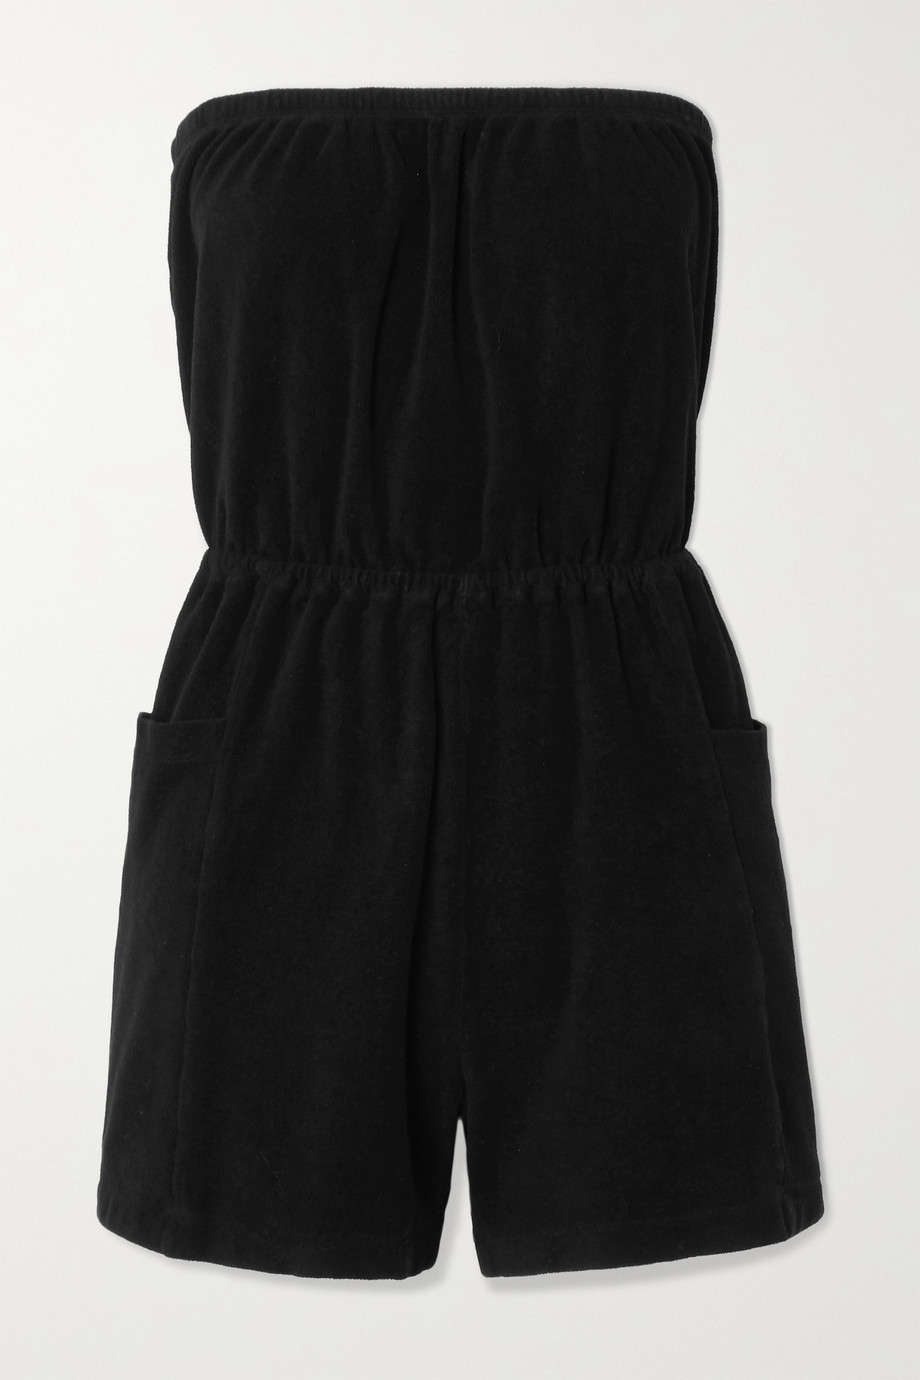 Suzie Kondi Cotton-terry playsuit